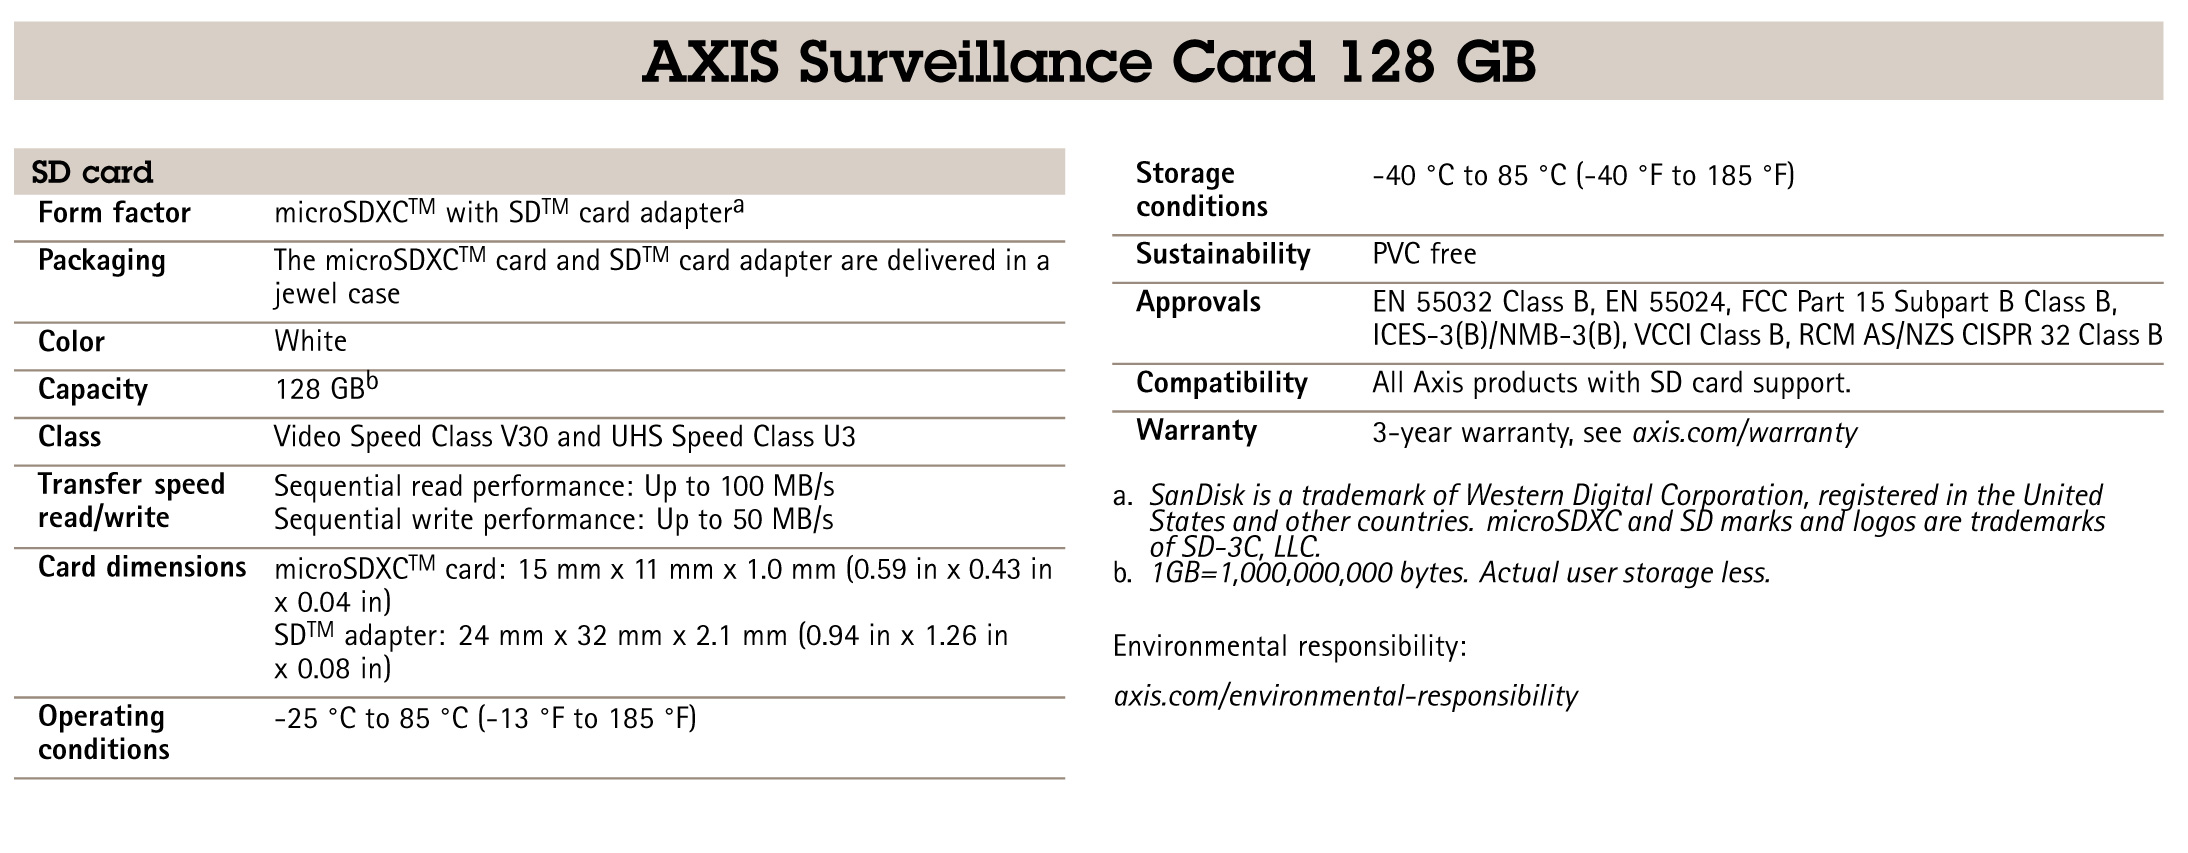 AXIS Surveillance Card 128 GB